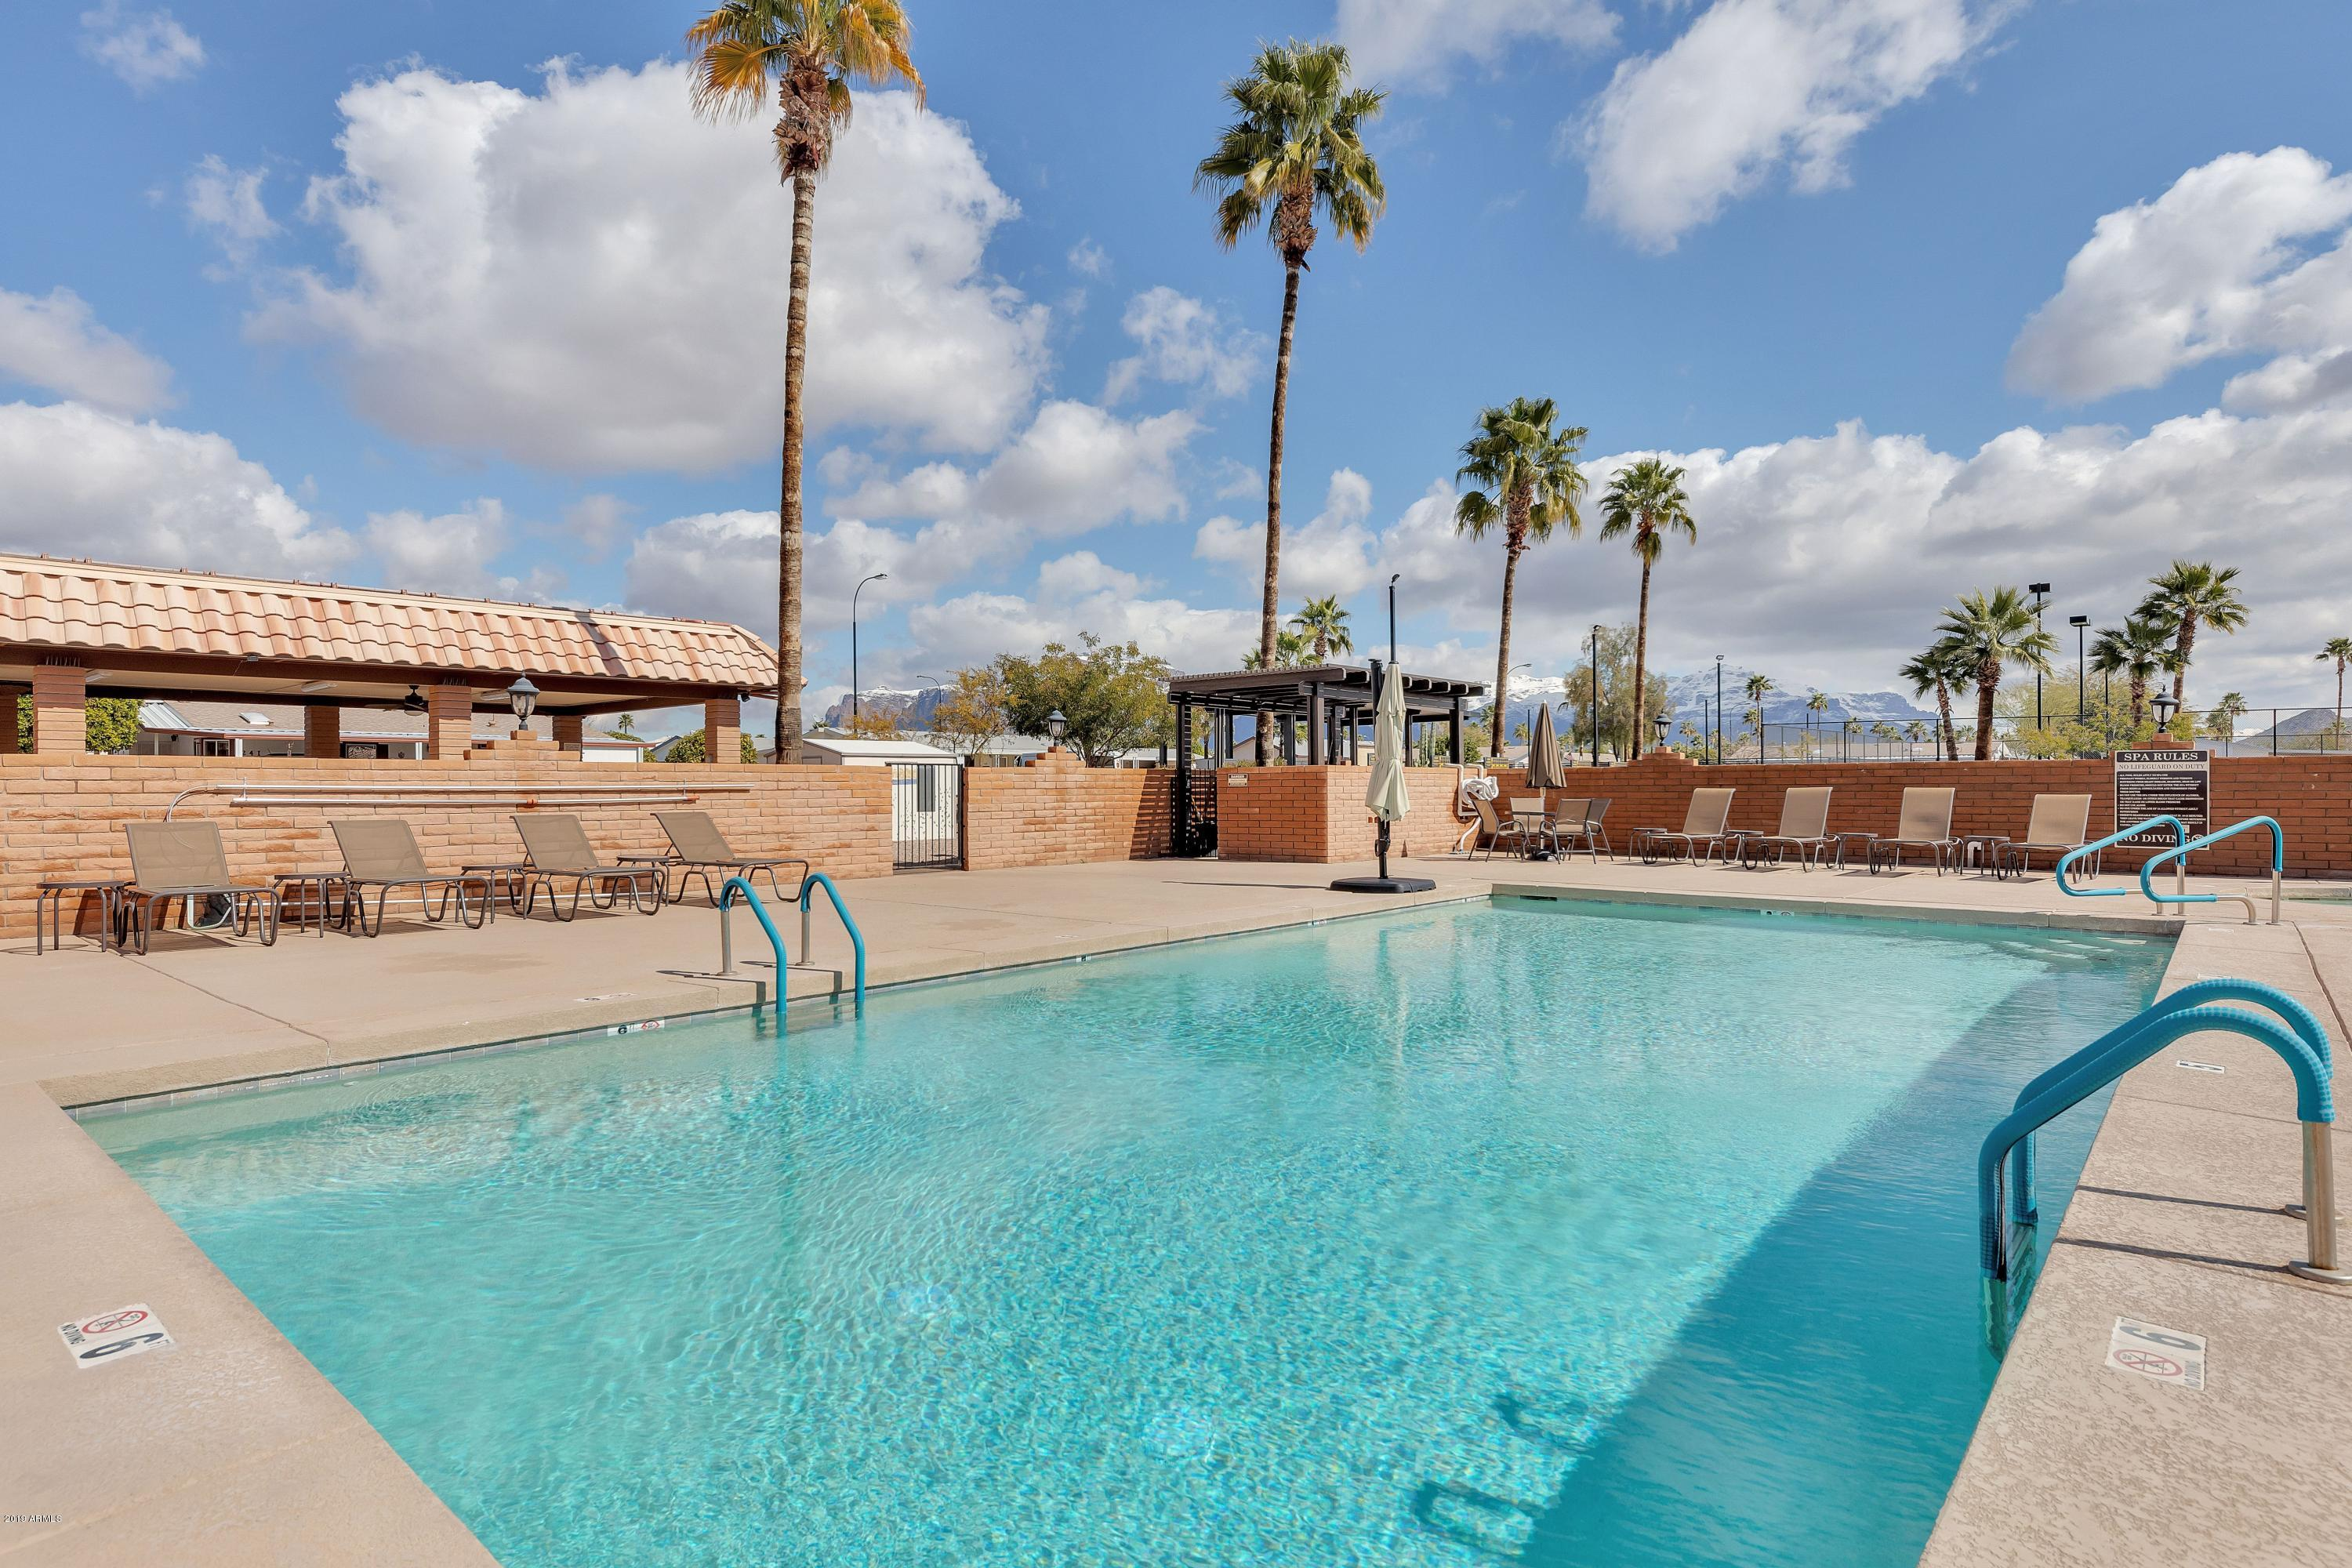 MLS 5887763 2400 E BASELINE Avenue Unit 283, Apache Junction, AZ 85119 Apache Junction AZ Gated